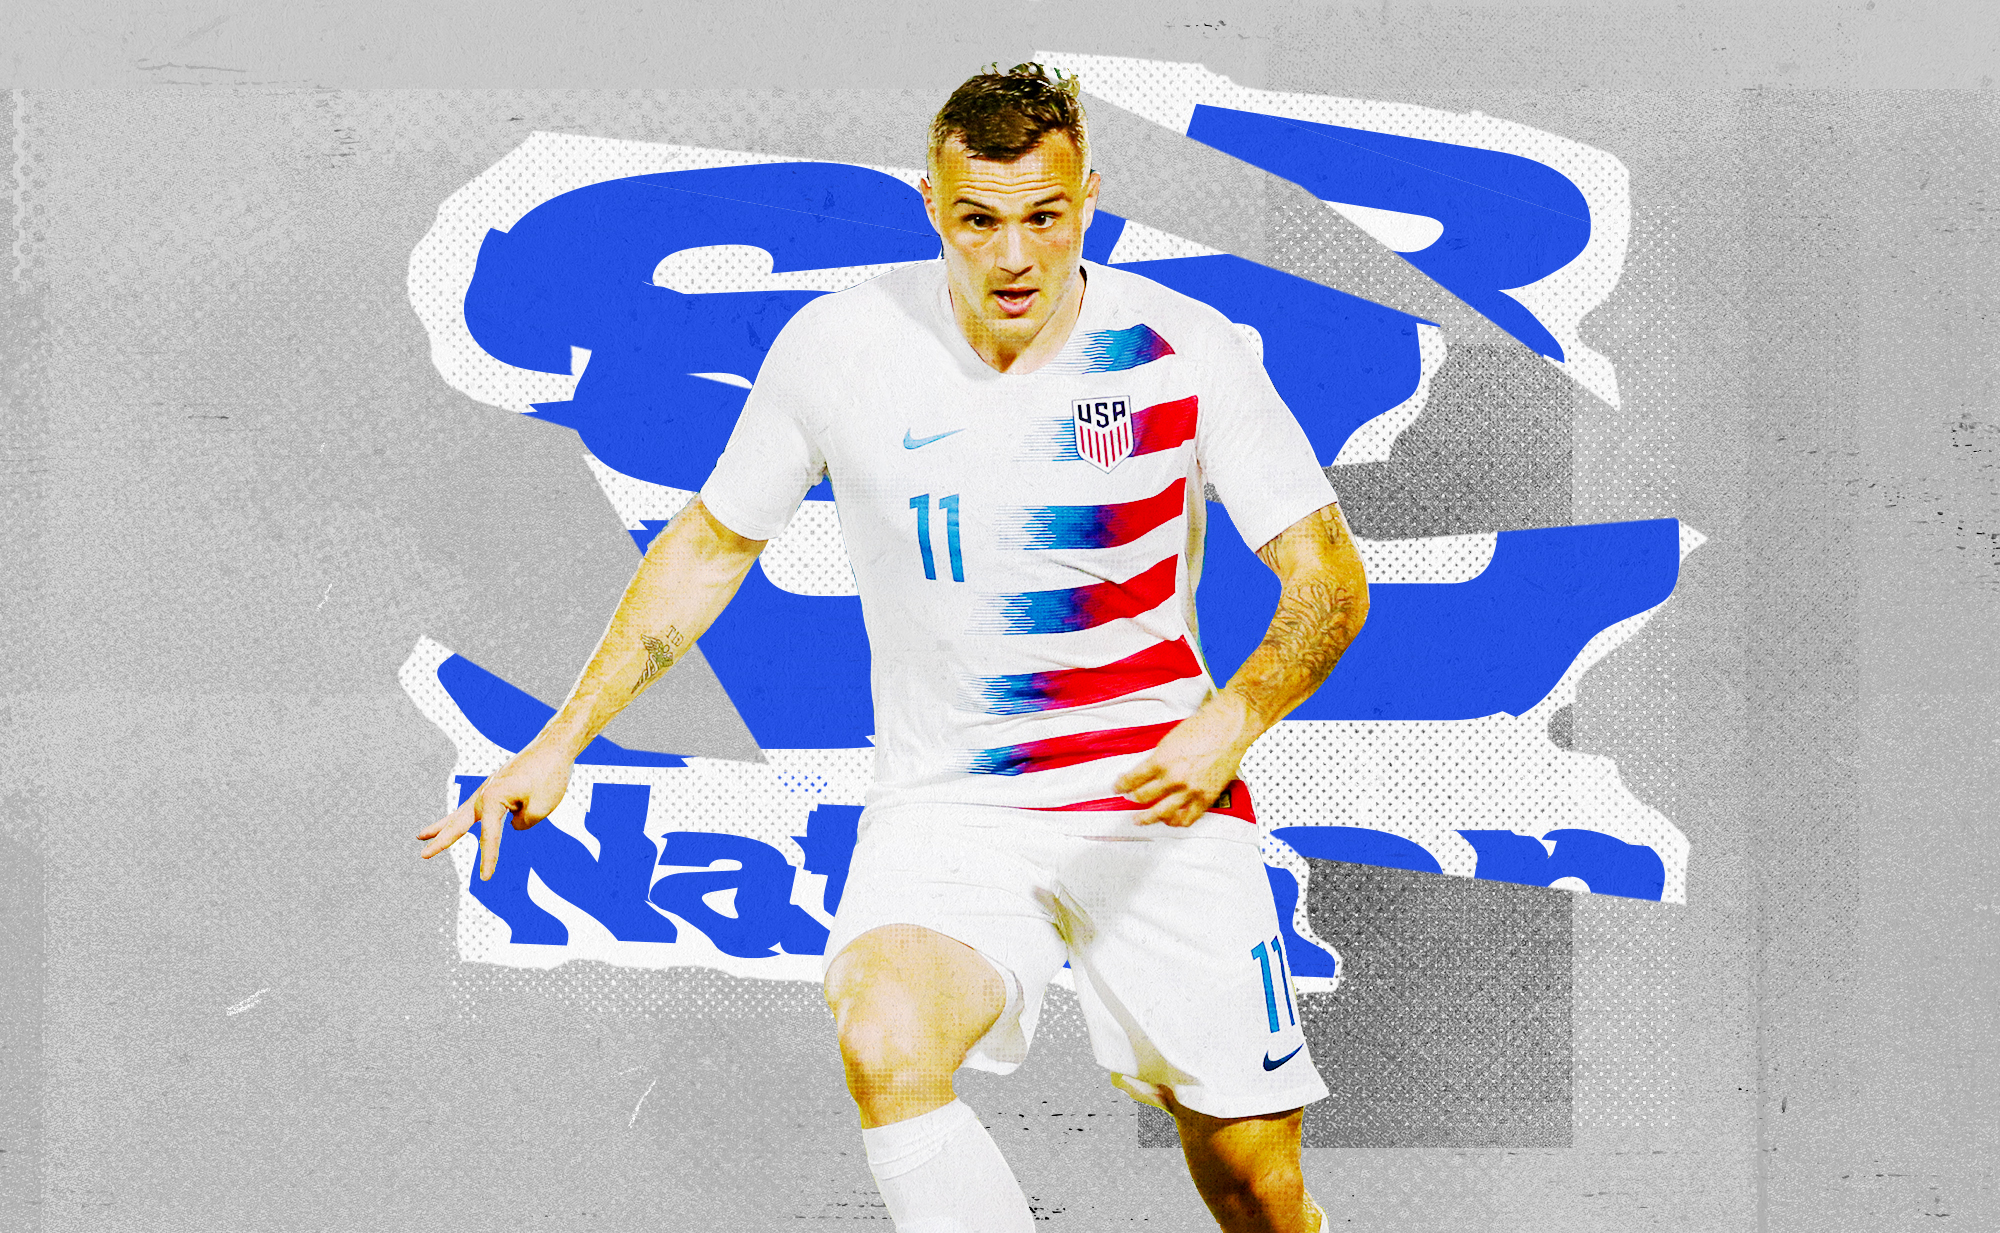 Jordan Morris in a white USMNT kit dribbling towards the viewer. Behind him is a distorted SB Nation logo on a white background.